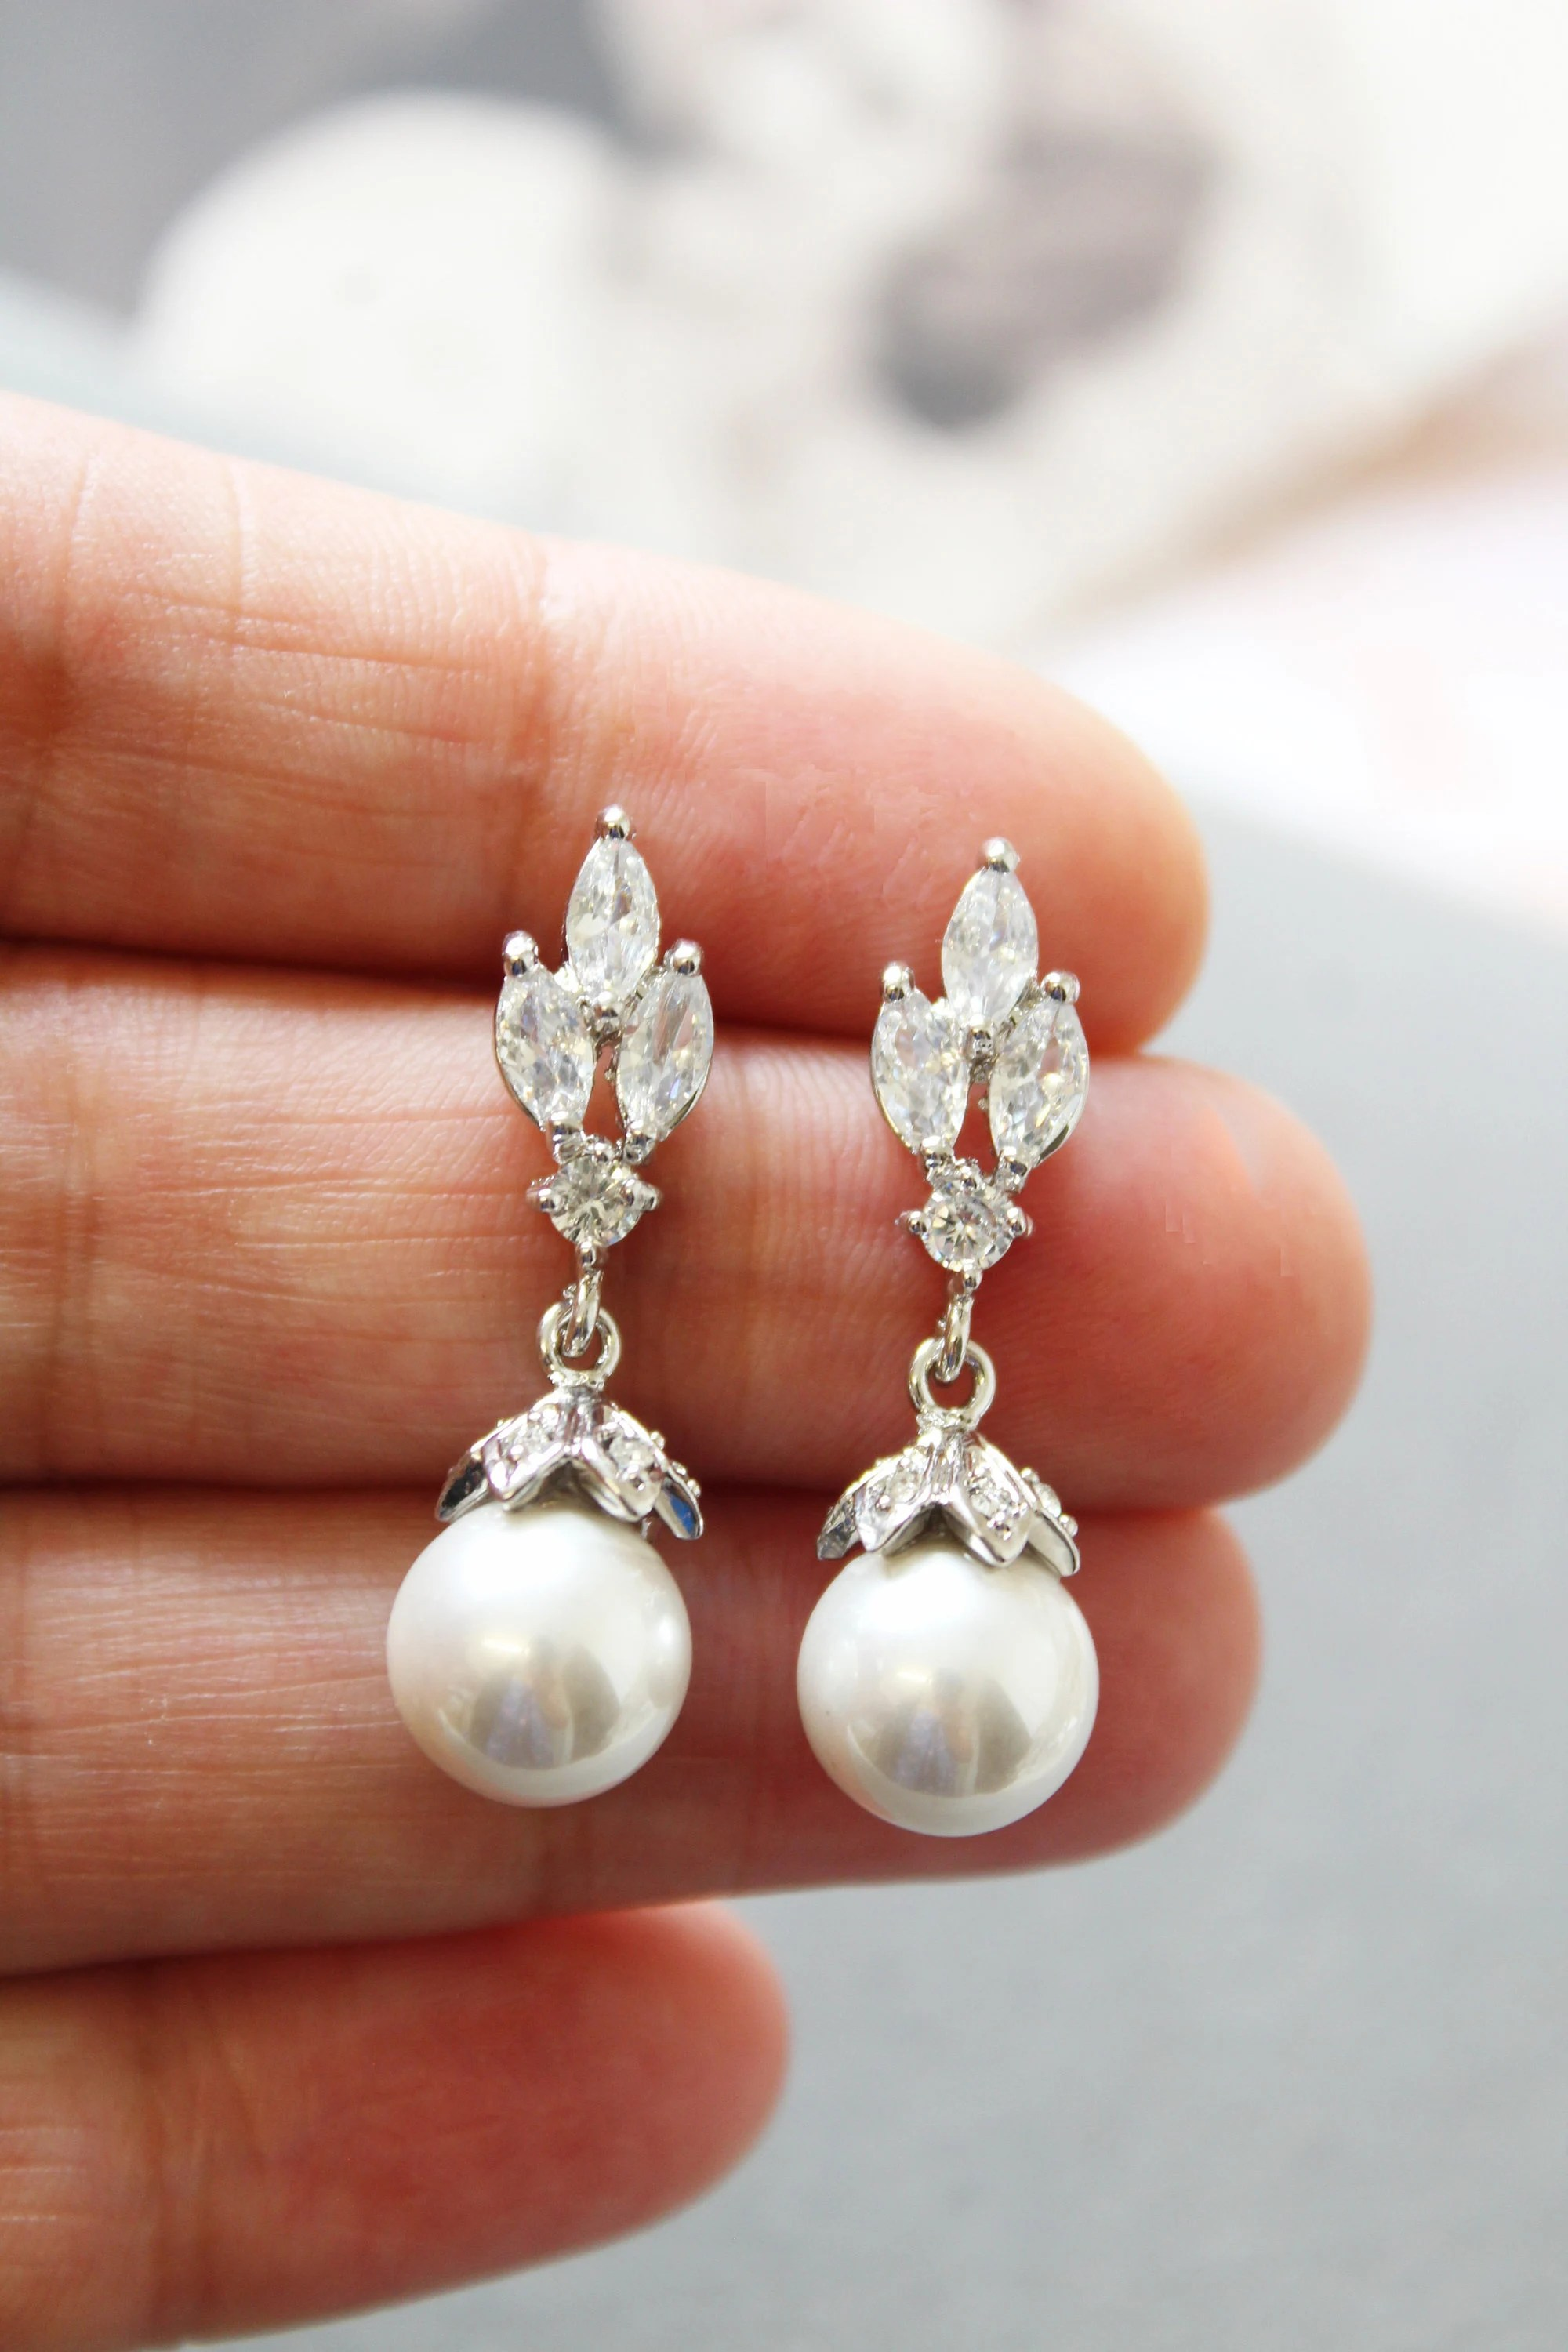 Art Deco Style Earrings Uk Bridal Earrings Art Deco Earrings Bridesmaid Earrings Pearl Earrings Wedding Jewelry Dangle Wedding Earrings Uk